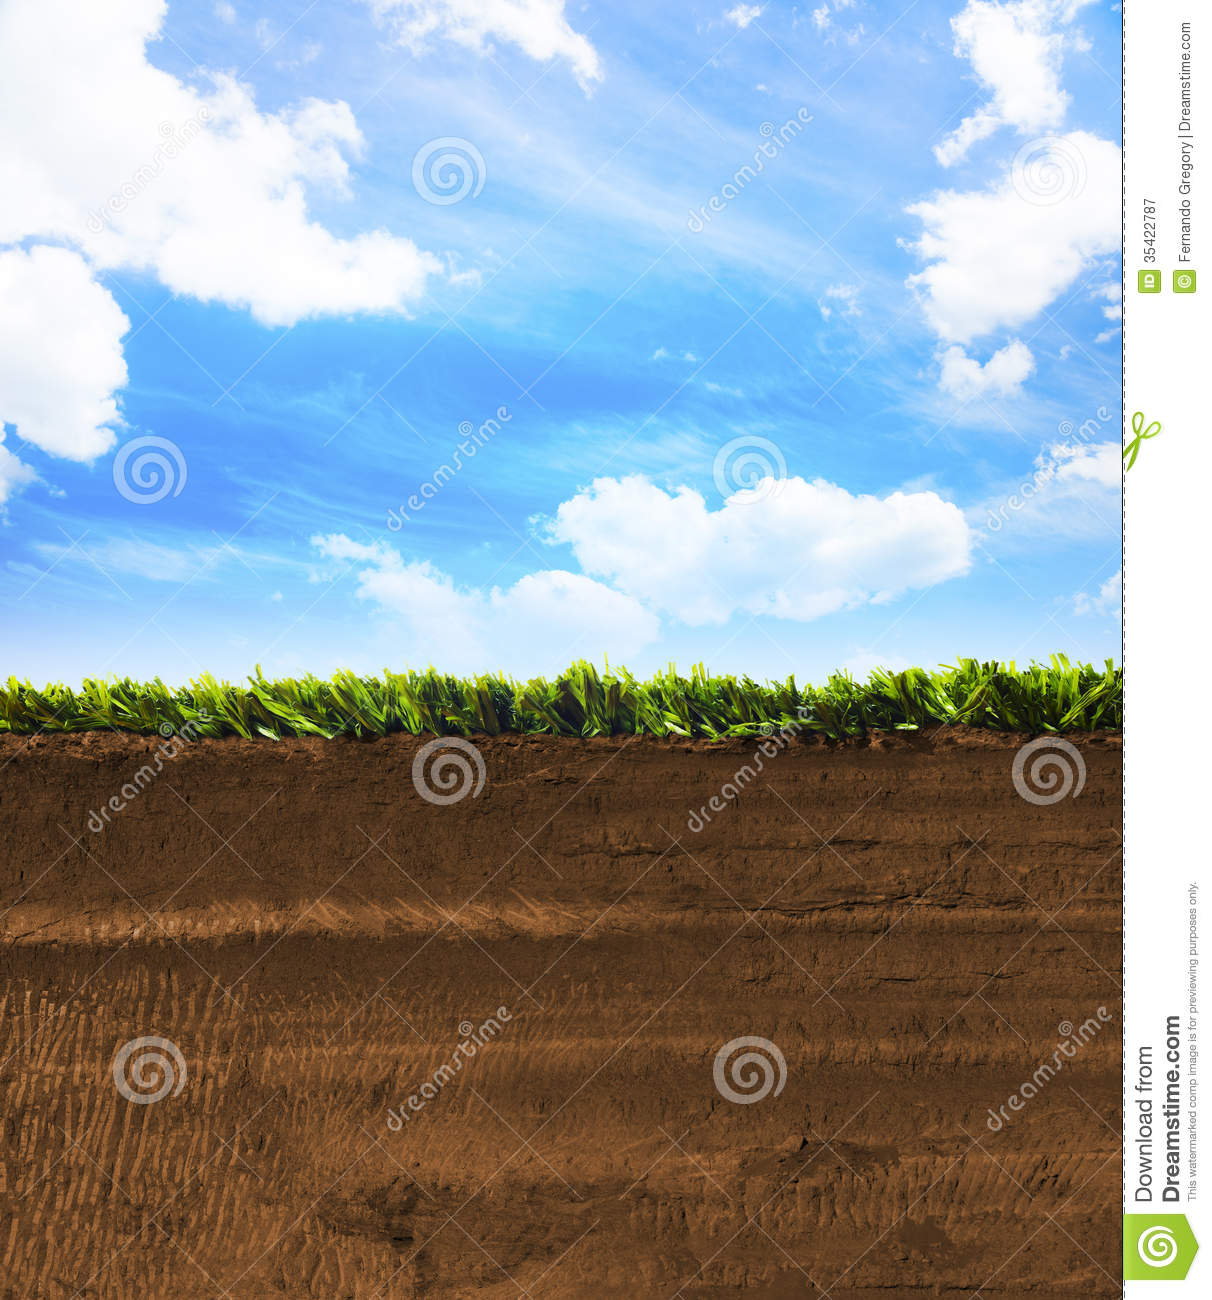 Cross Section Of Grass With Blue Sky Stock Image